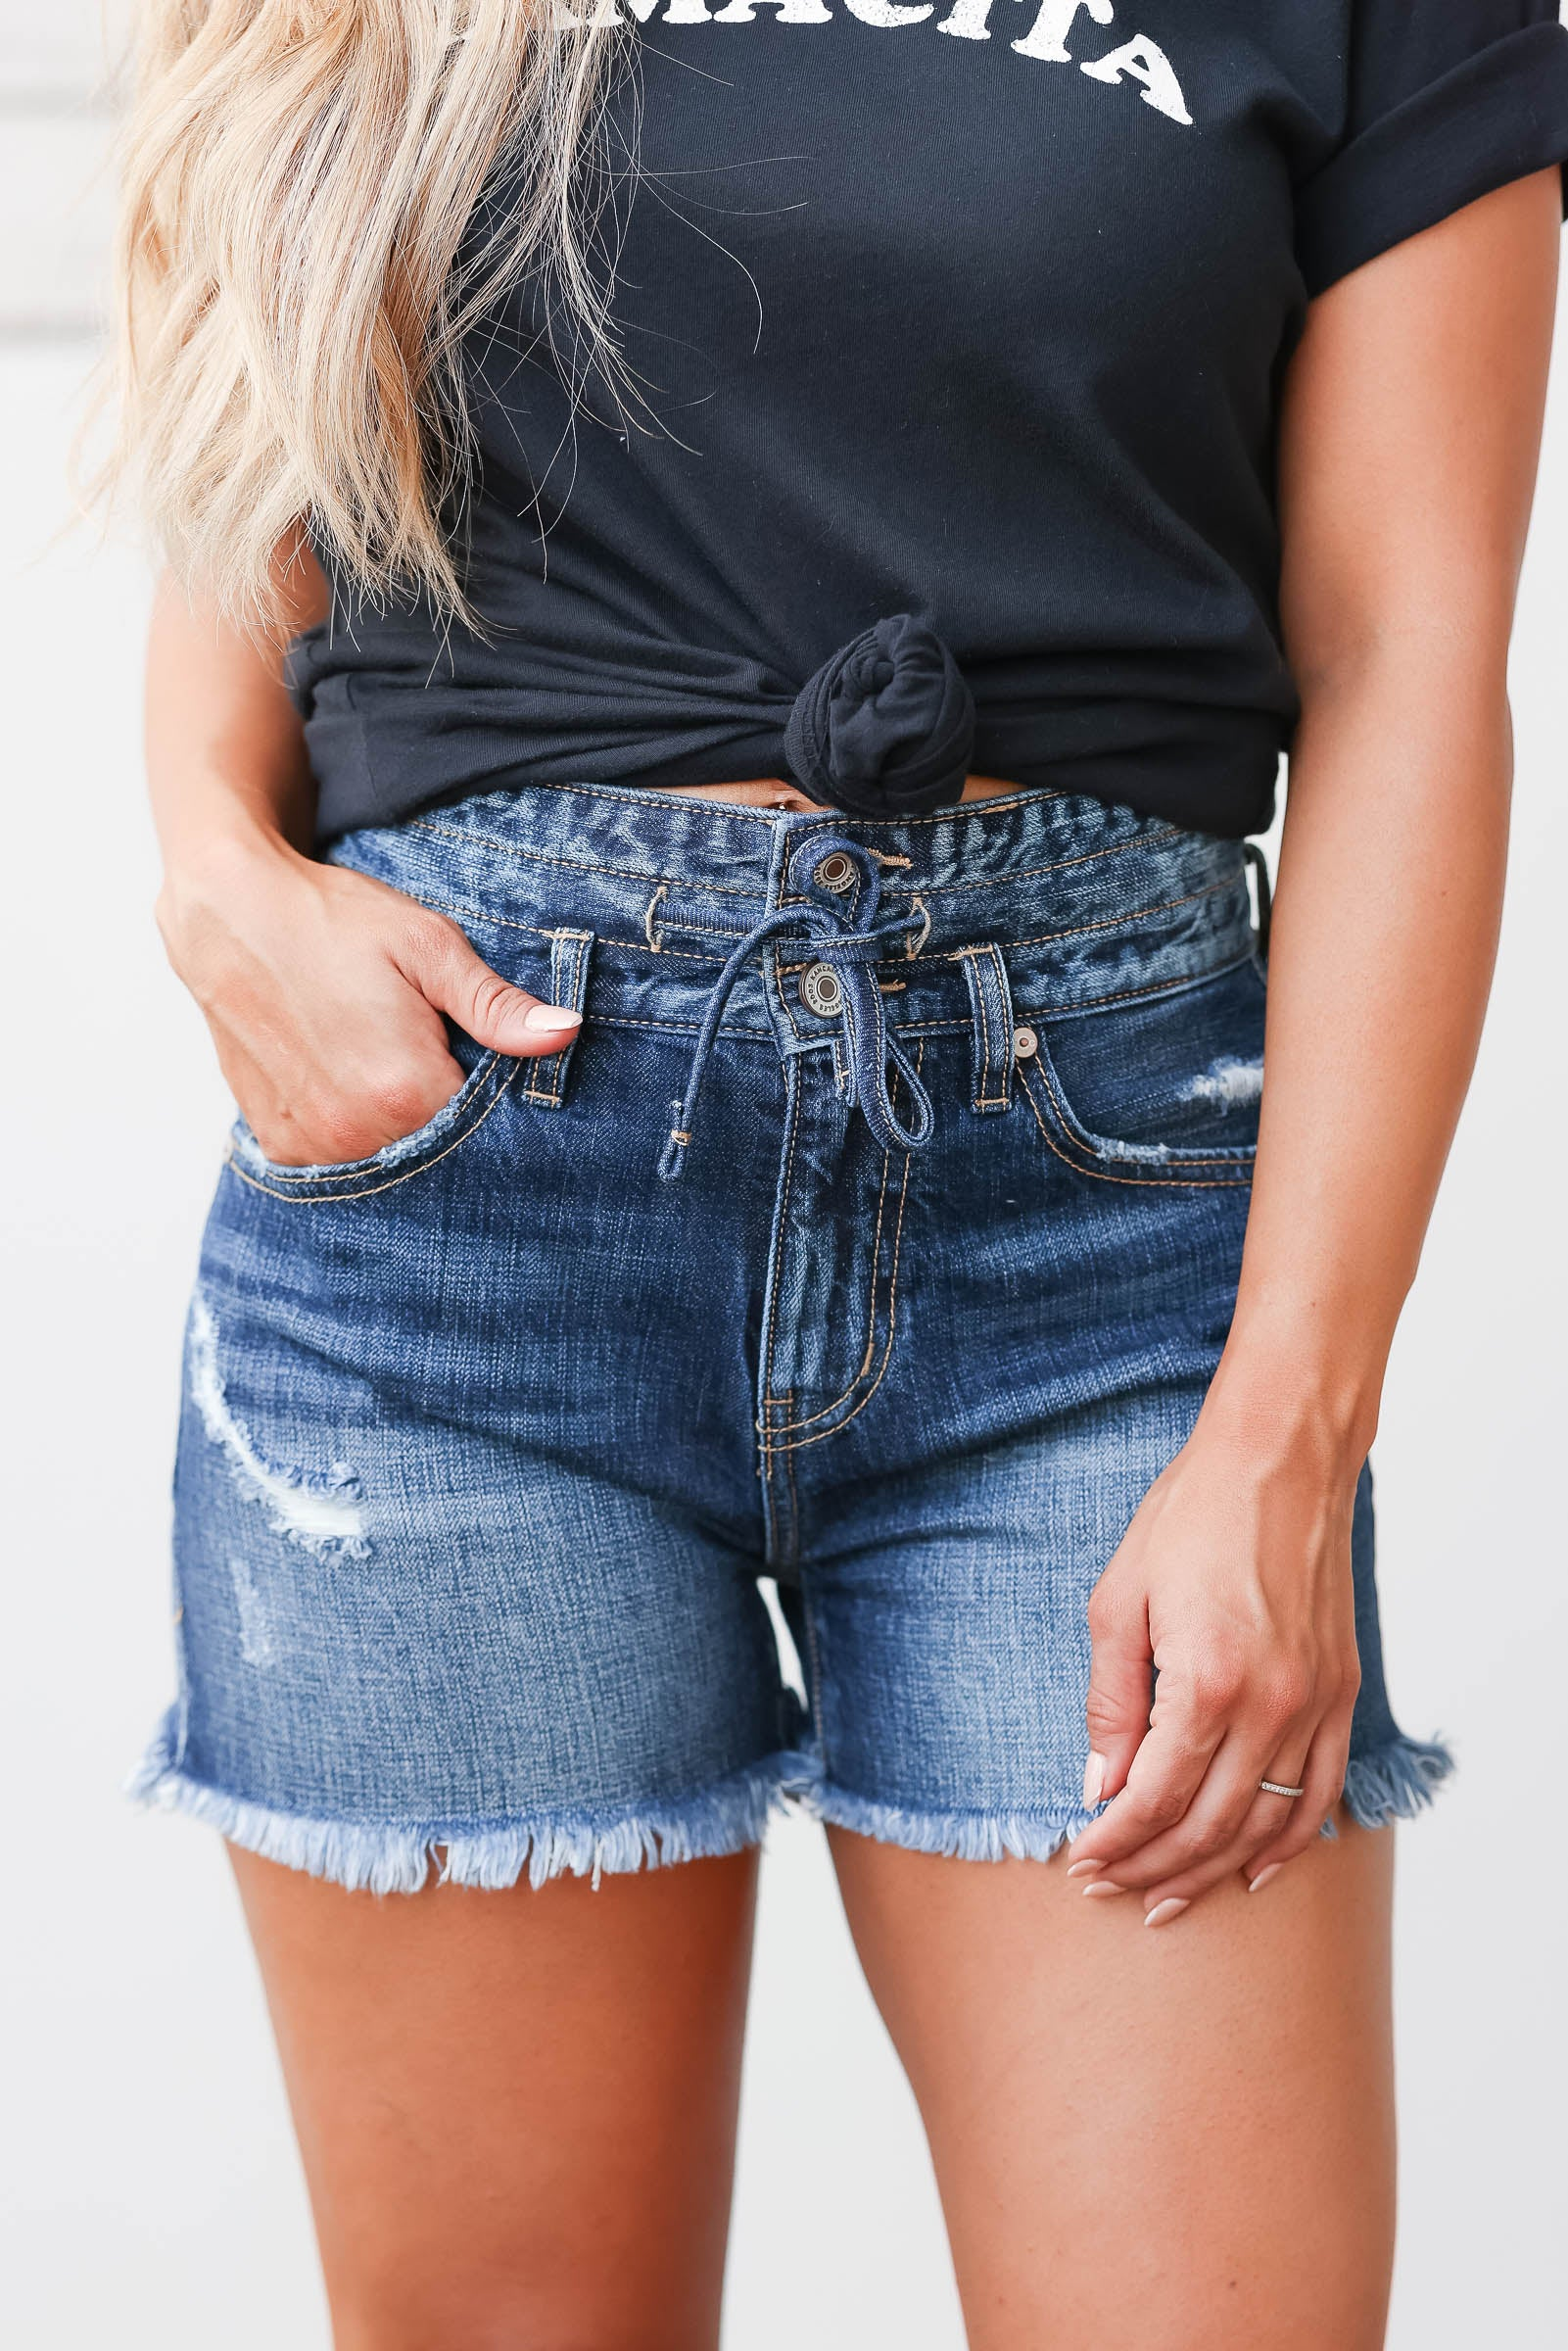 KAN CAN Adriana Denim Shorts - Dark Wash closet candy womens trendy high rise raw hem jean shorts with drawstring front